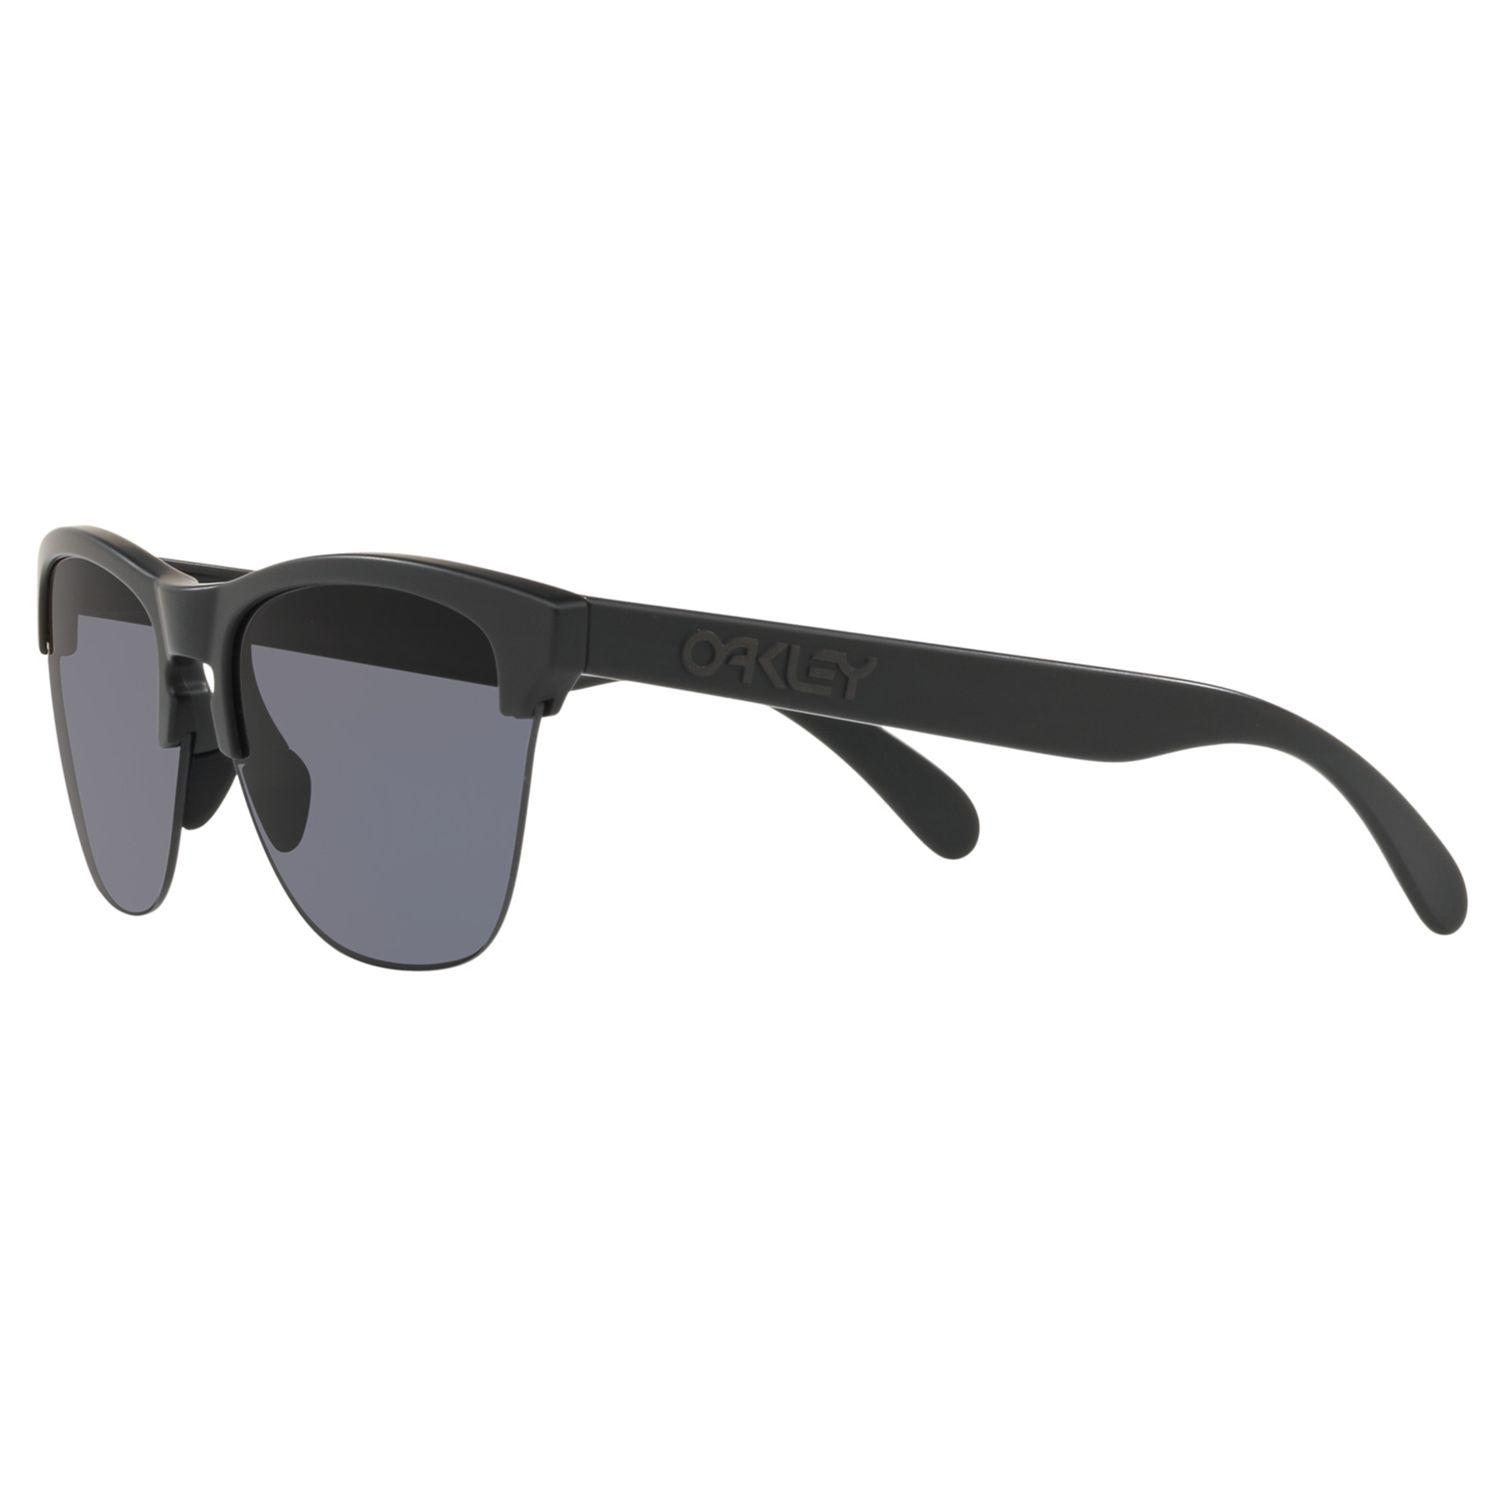 b9a501d4db Oakley Frogskinstm Lite in Black for Men - Lyst